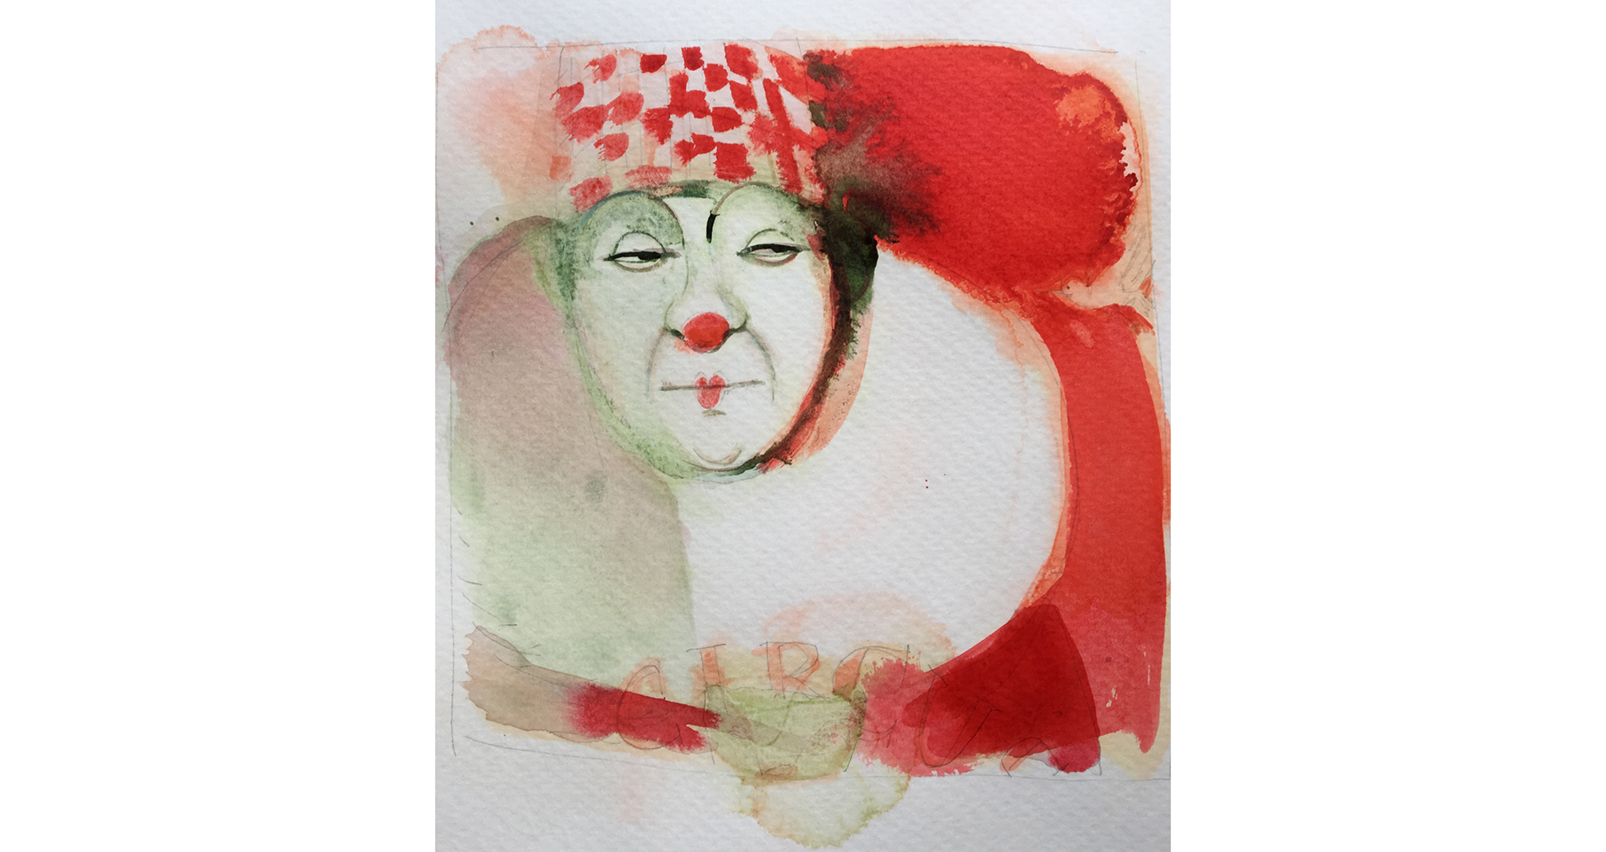 Watercolor illustration, circus, ink, portrait, clown, sketchbook